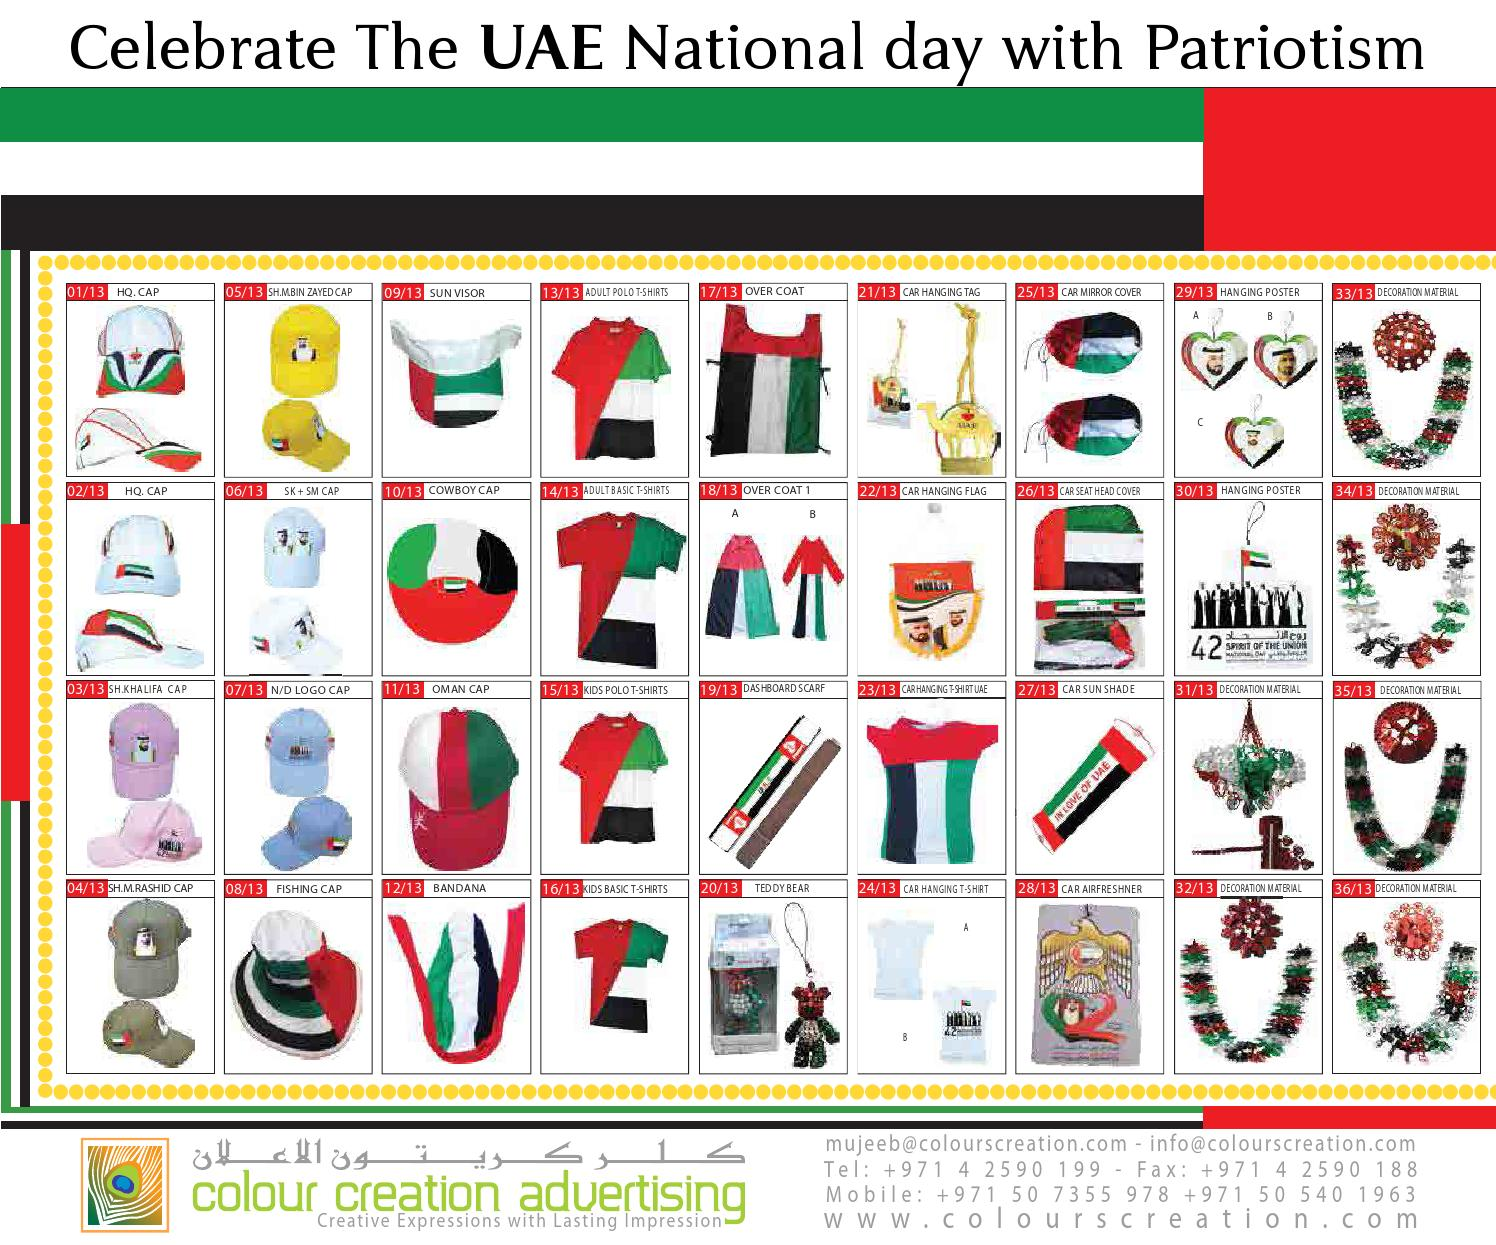 Car Decoration For Uae National Day Celebrate The Uae National Day With Patriotism By Mohammed